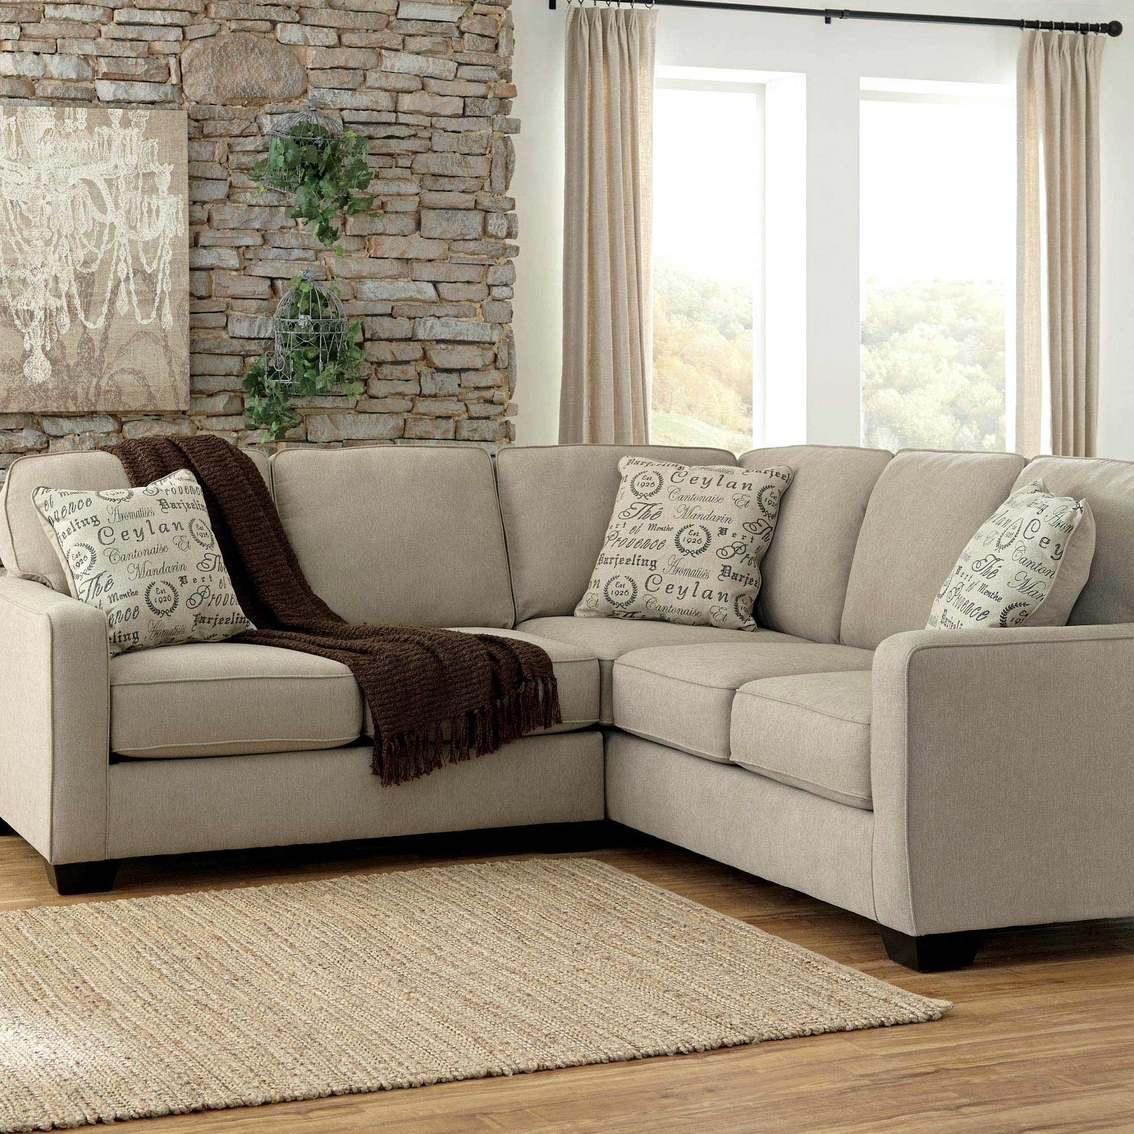 2017 Ashley Furniture Sectional Sofas — Cabinets, Beds, Sofas And With 2 Seat Sectional Sofas (View 3 of 15)